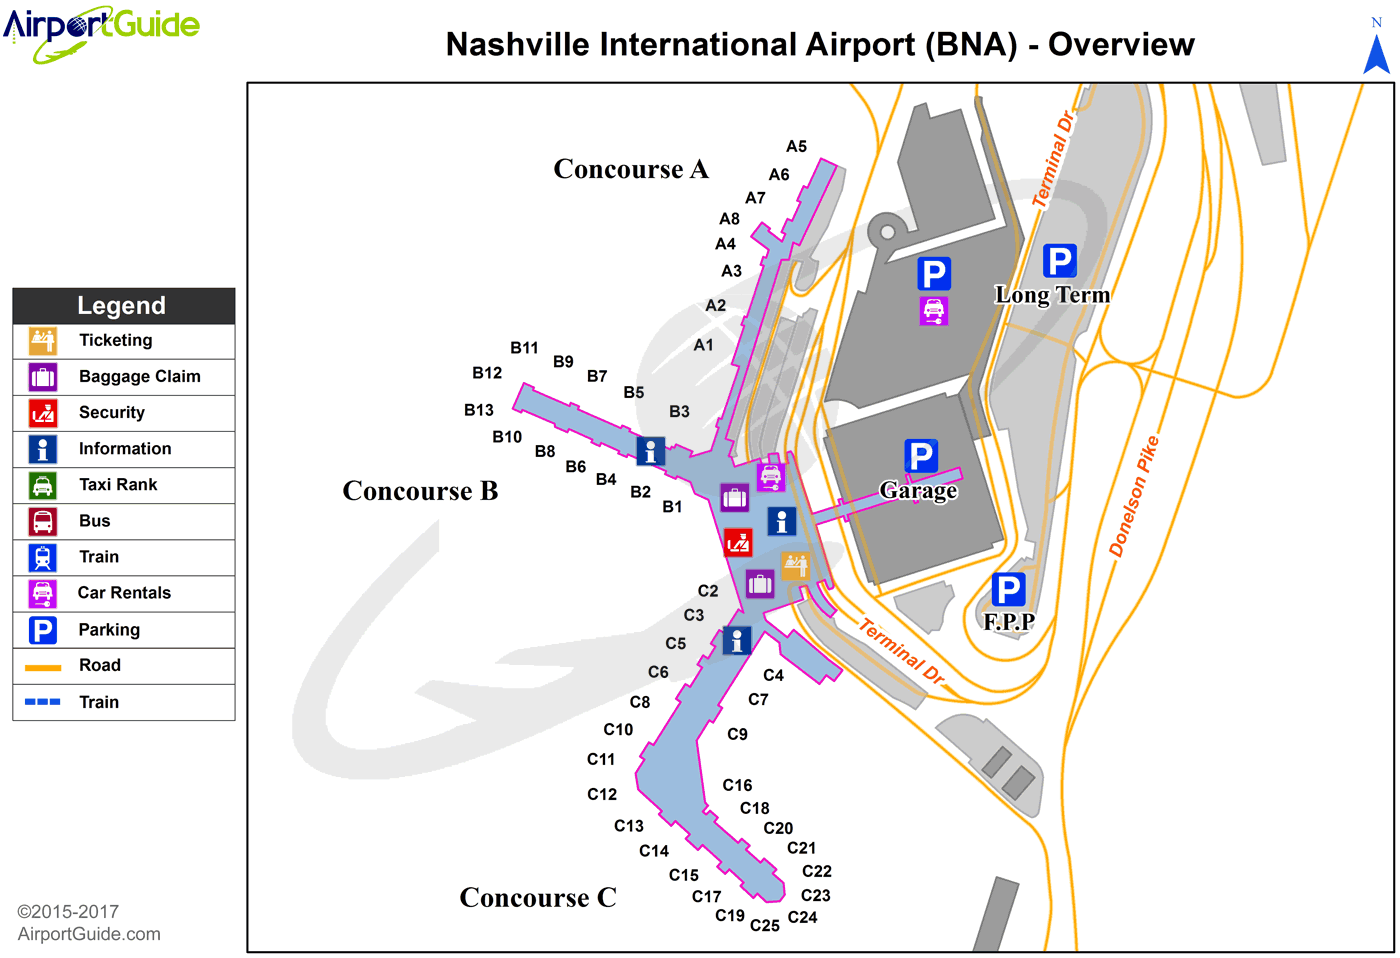 Nashville - Nashville International (BNA) Airport Terminal Map - Overview